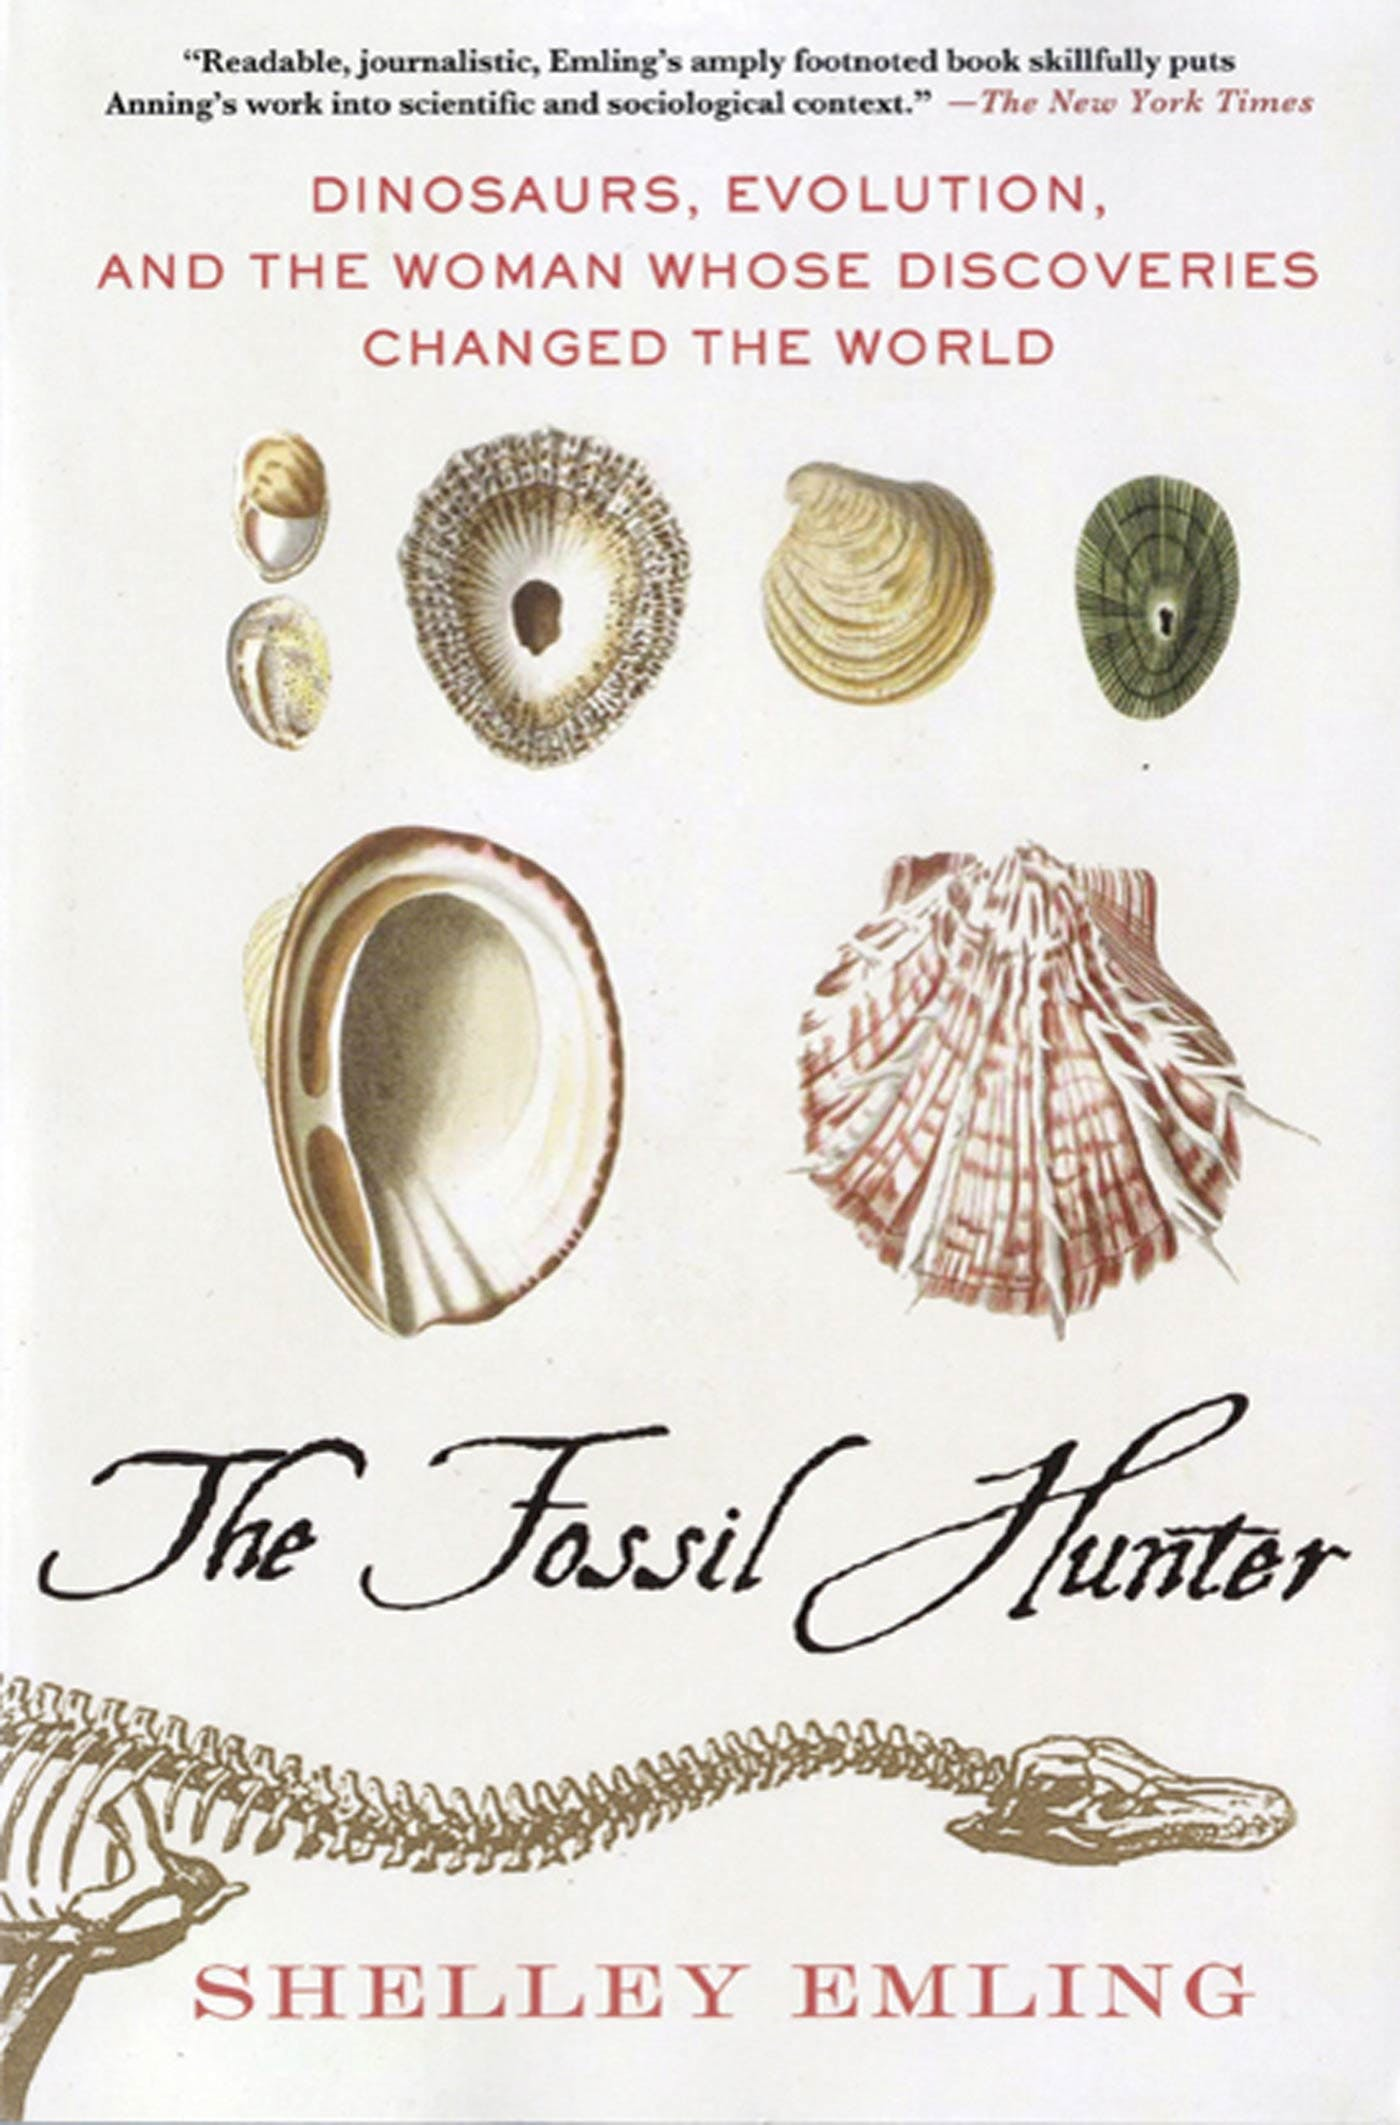 Image of The Fossil Hunter